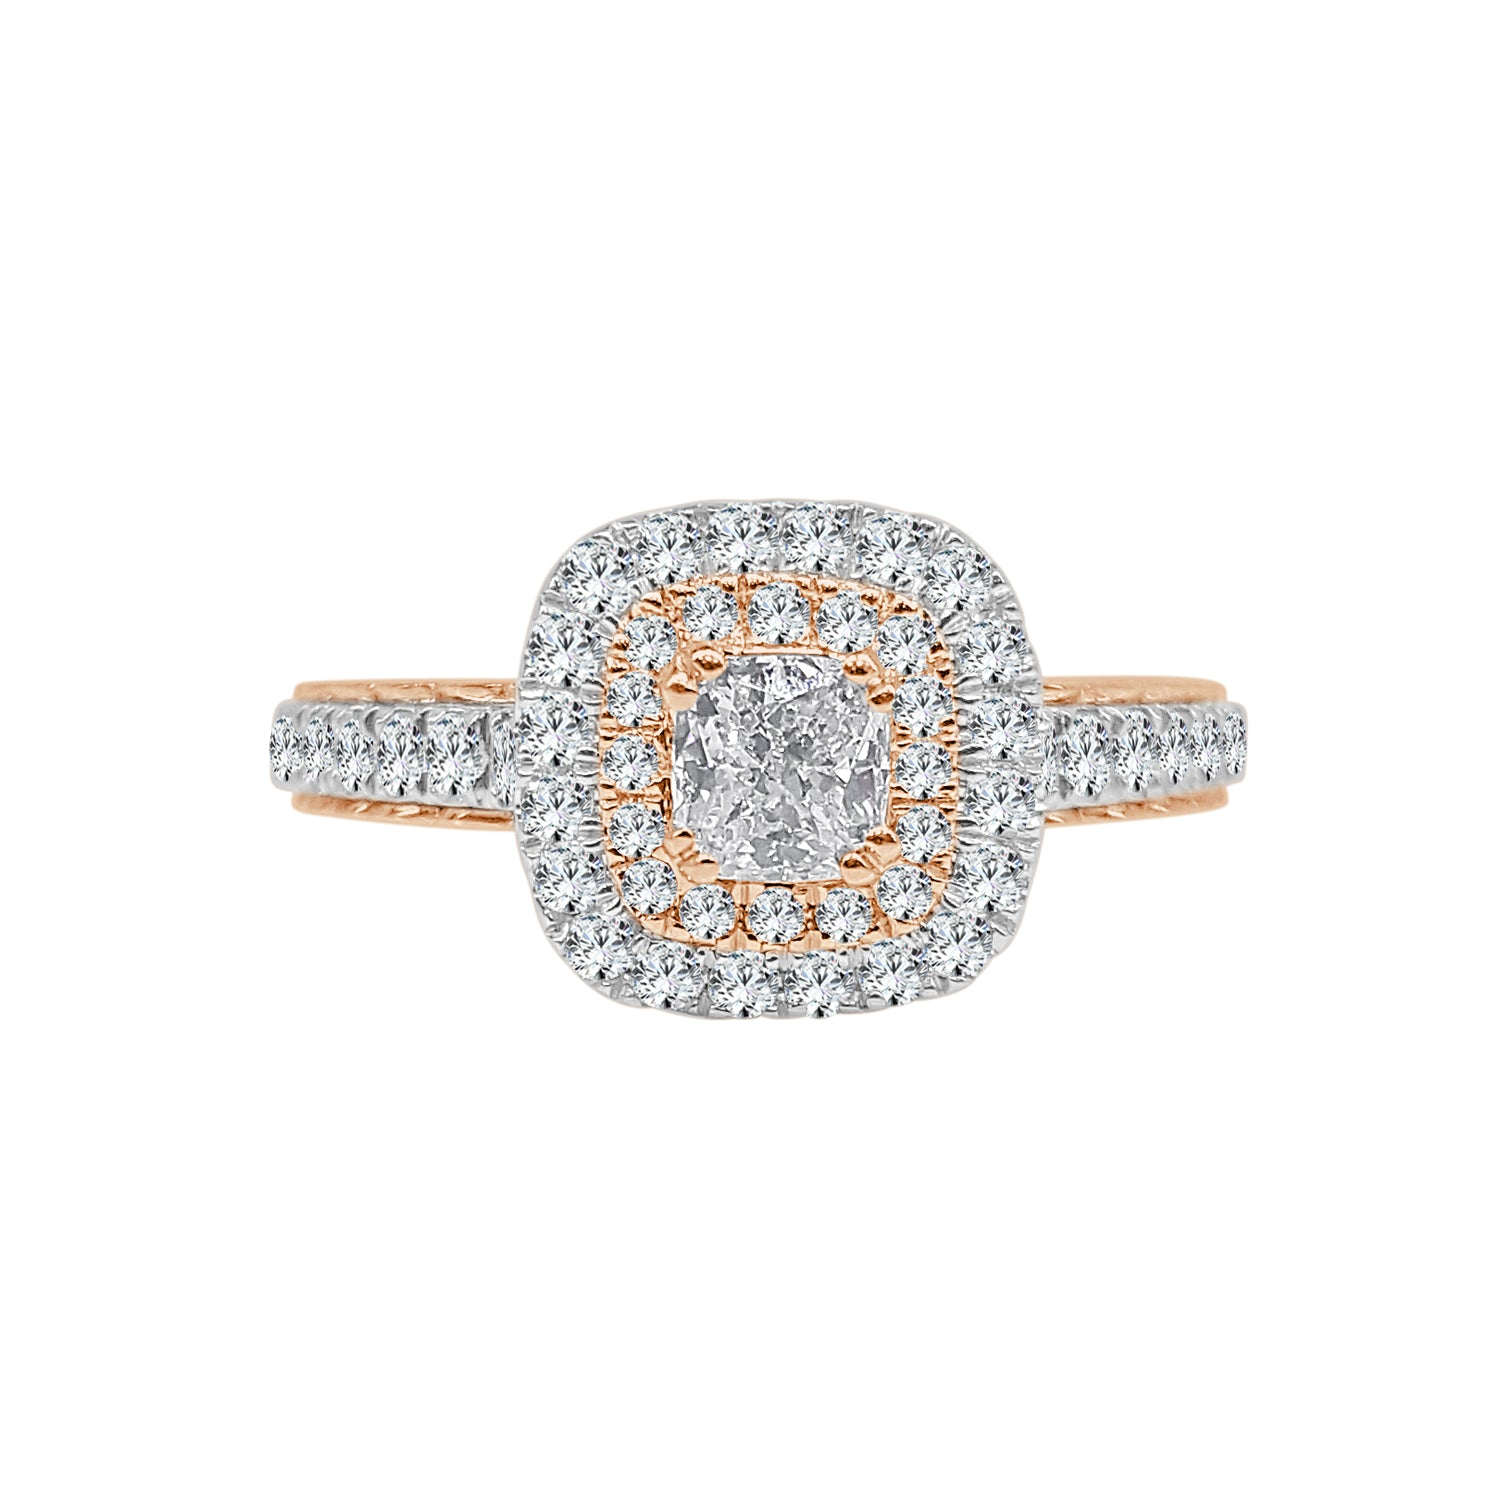 Two-tone Double Halo Diamond Engagement Ring